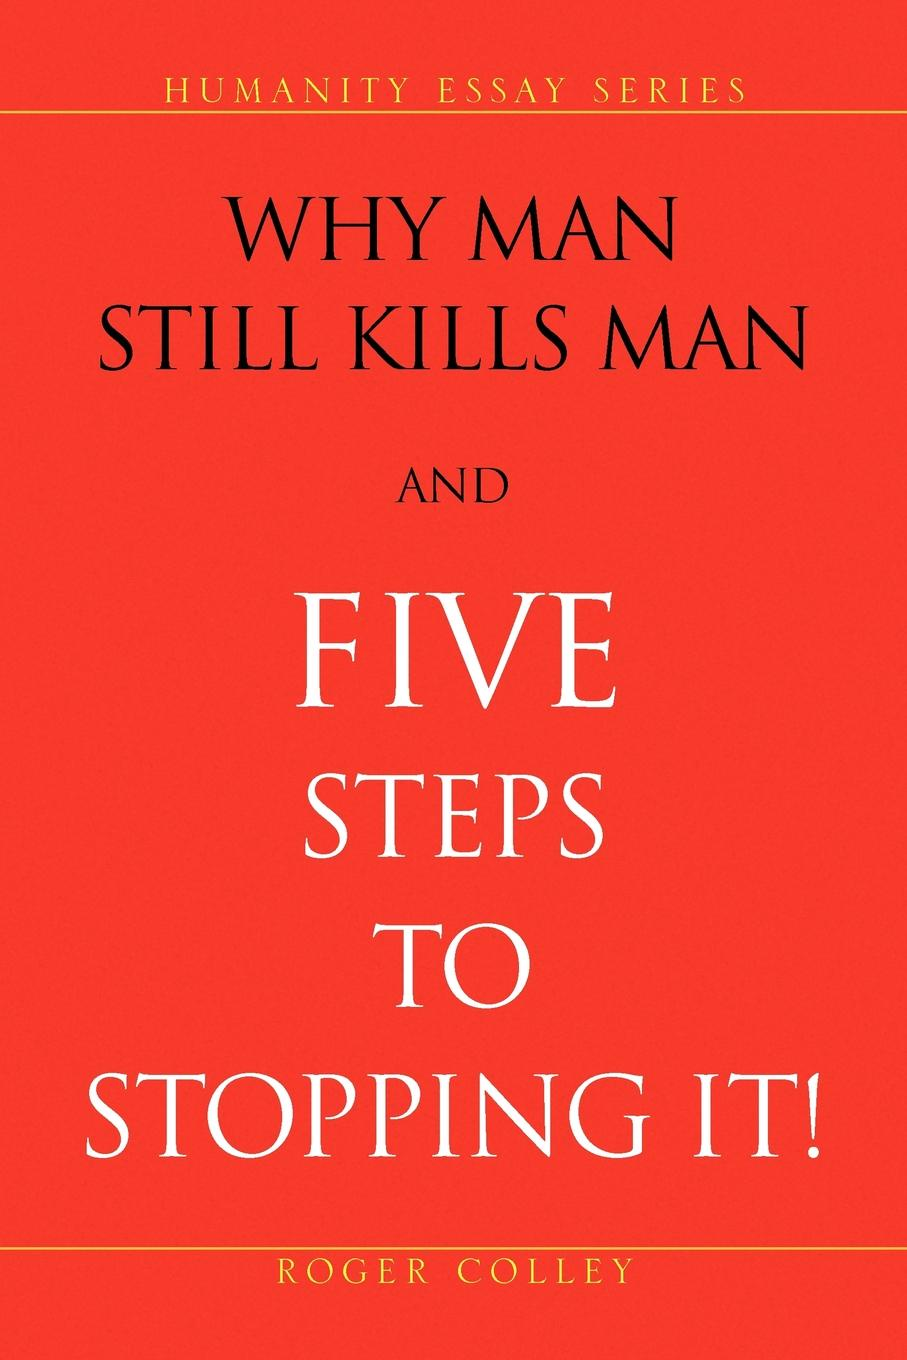 цены Roger Colley Why Man Still Kills Man and Five Steps to Stopping It!